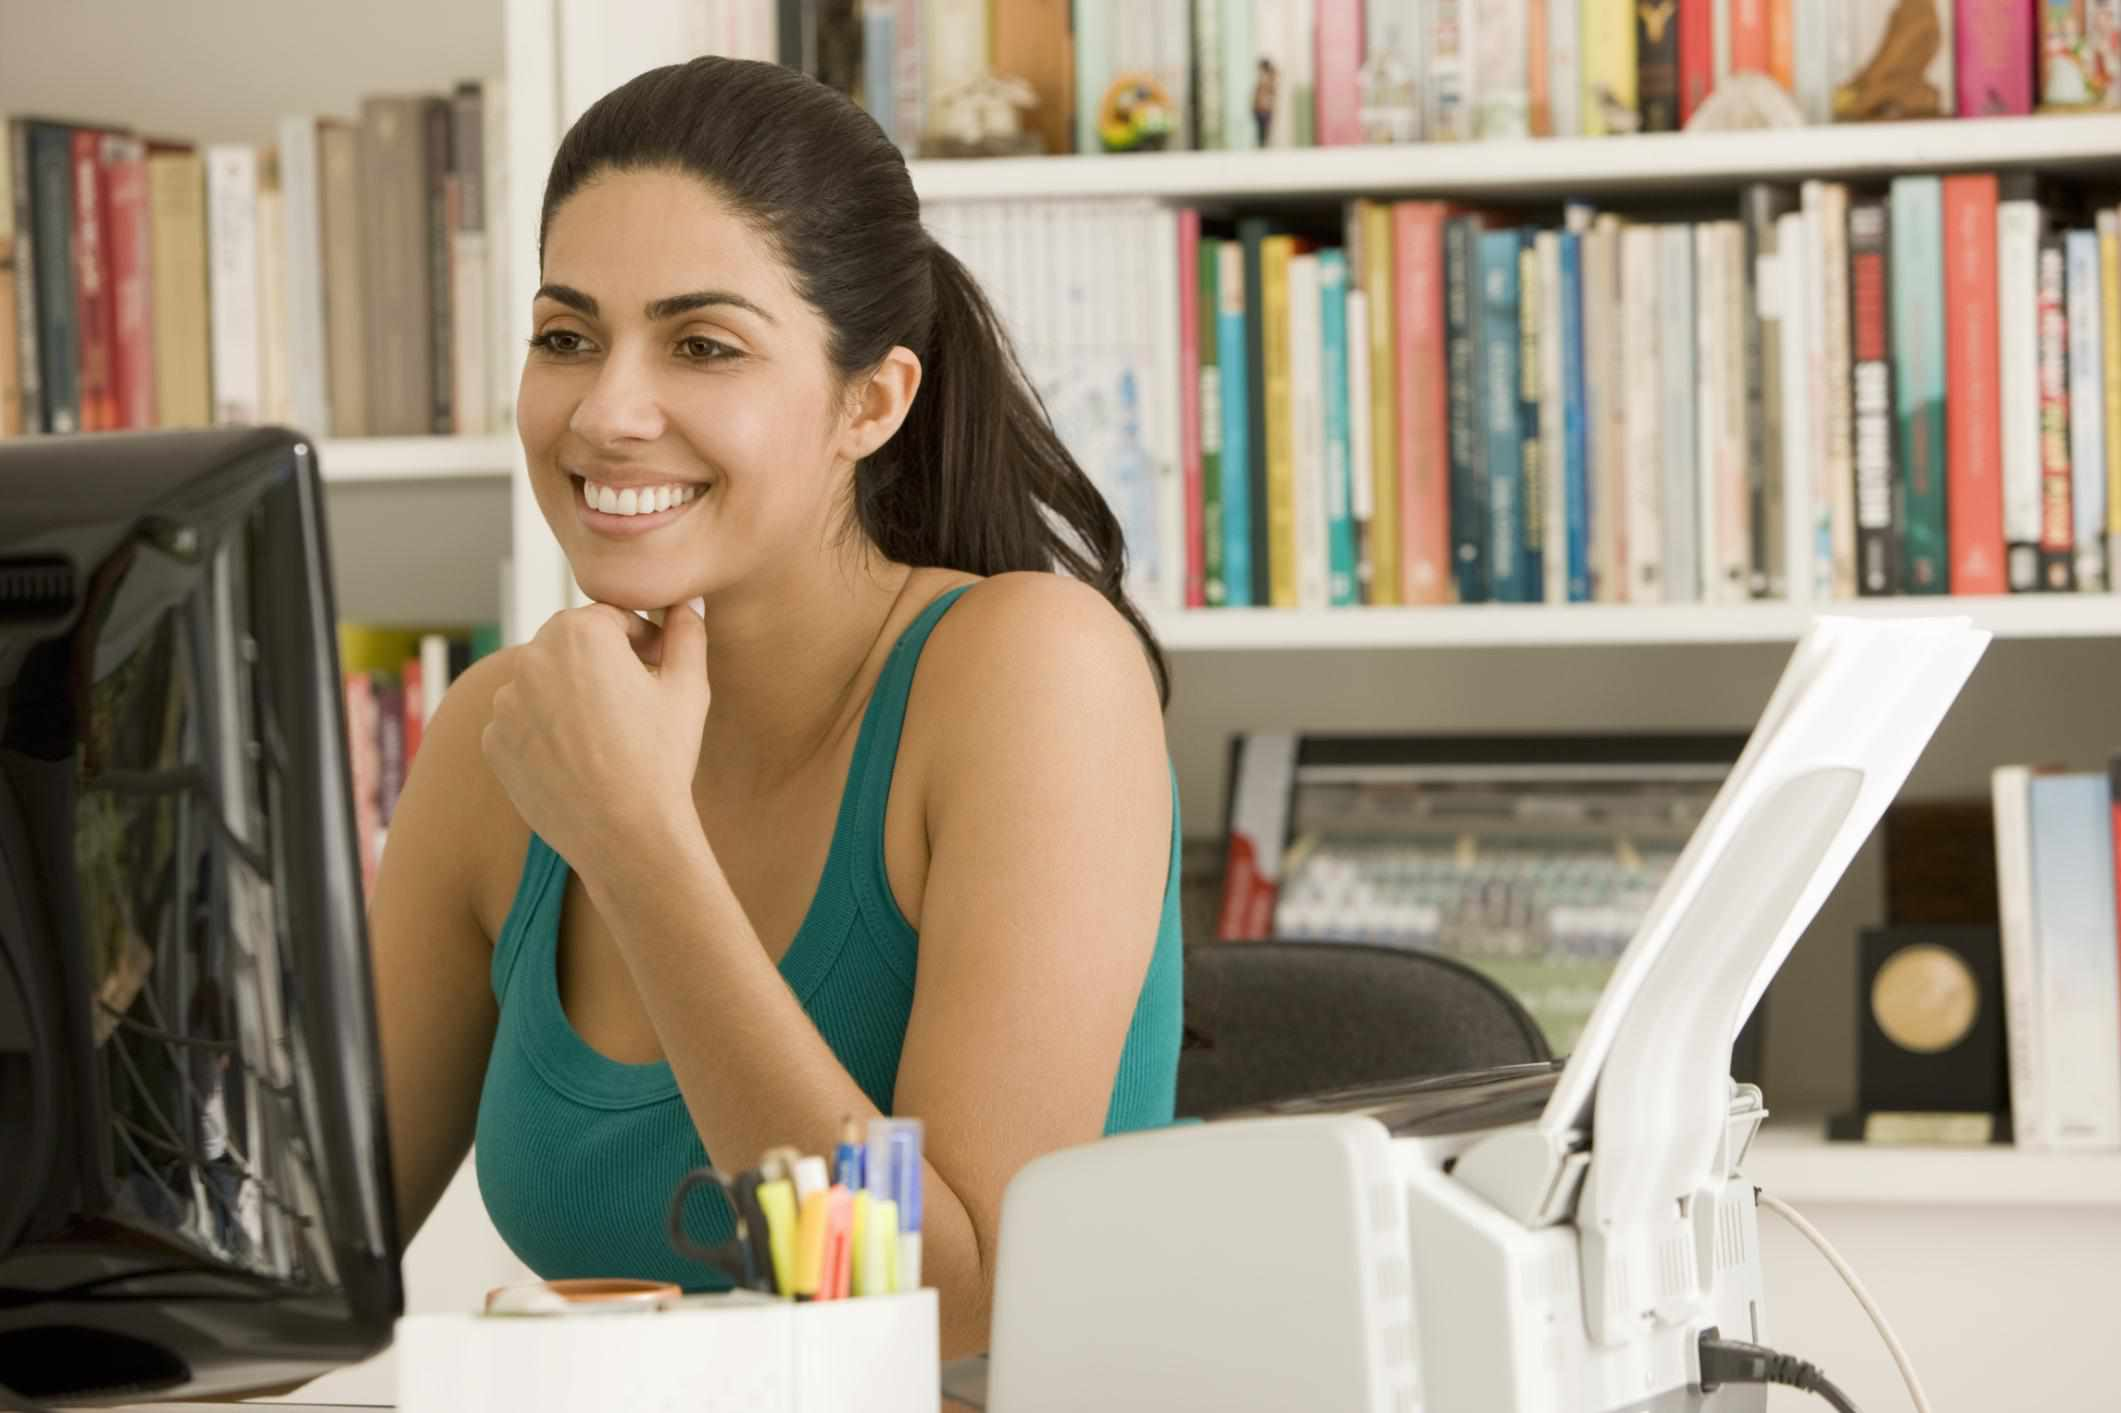 Person sitting at desk, looking at computer, with printer on the side